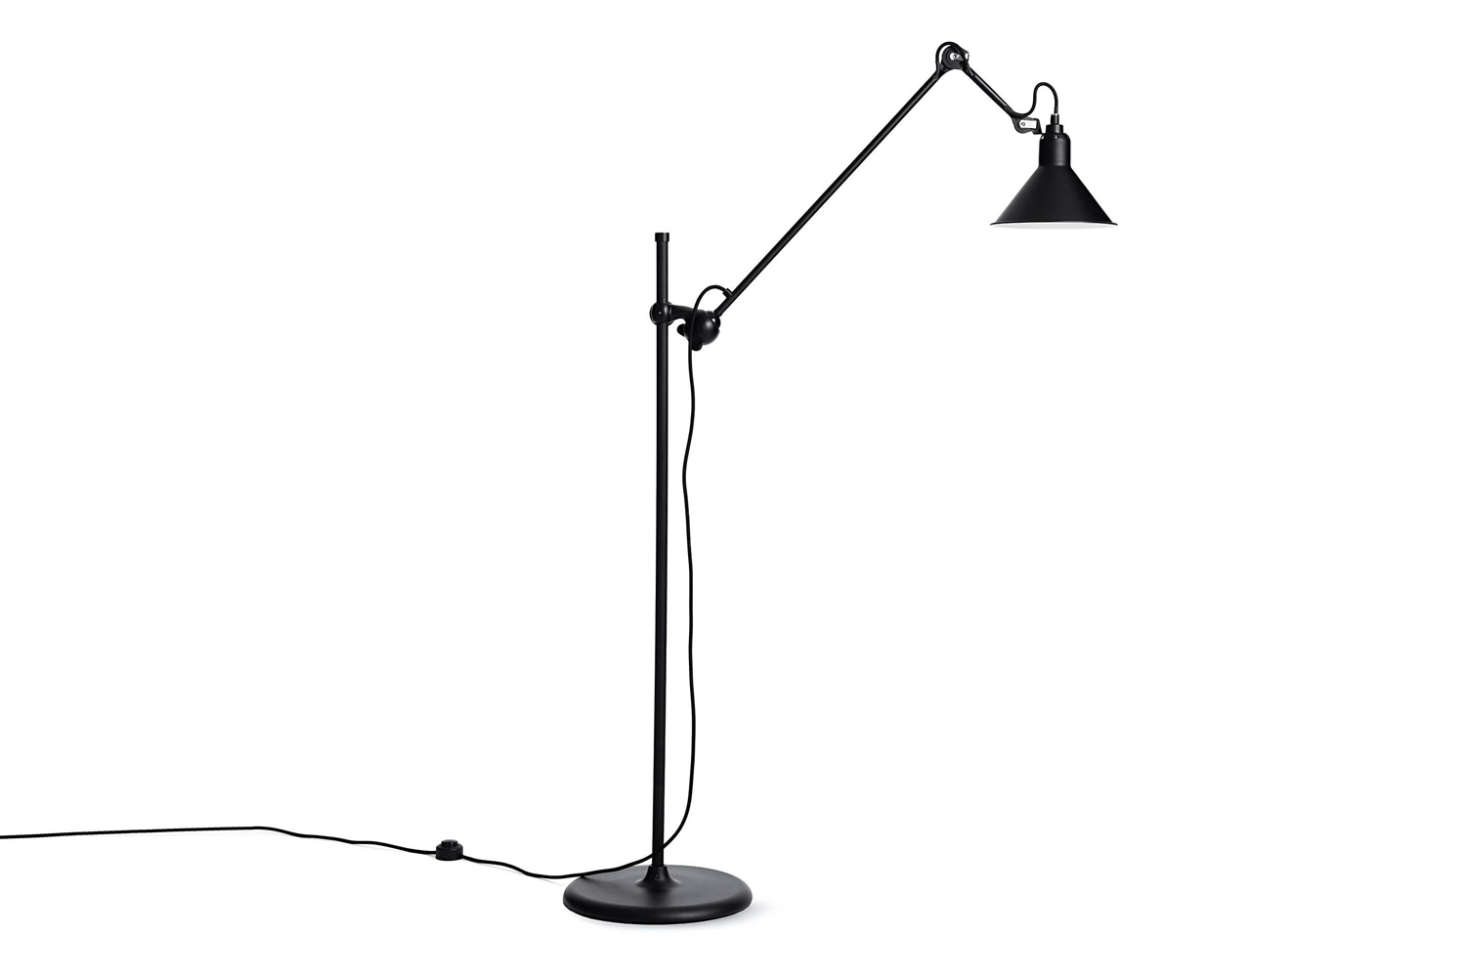 The Lampe Gras Model 215L Floor Lamp designed by French engineer Bernard-Albin Gras in 1921 and produced by DCW Editions comes in black and chrome. It's $960 at Design Within Reach.